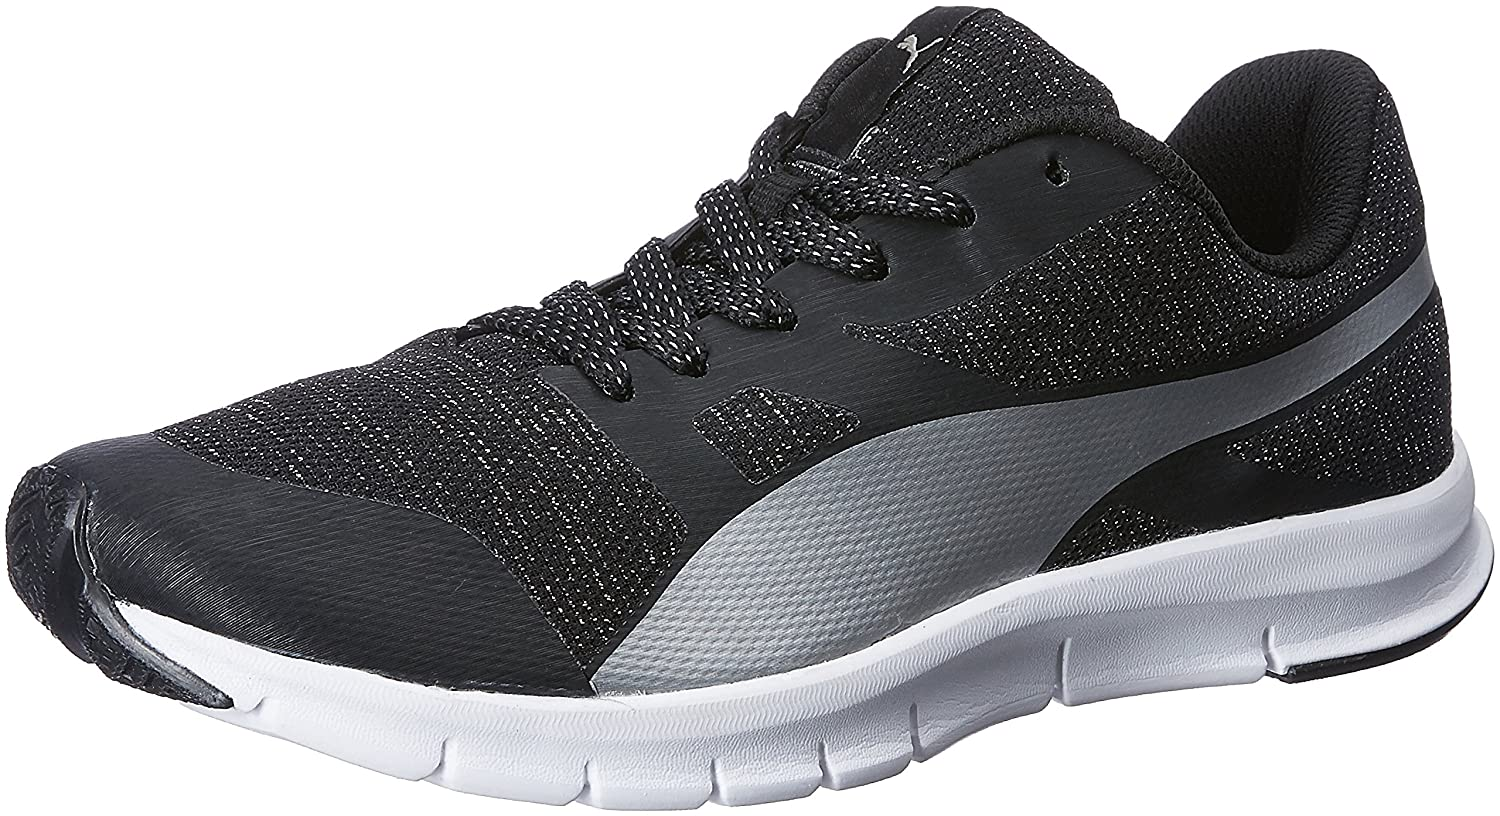 Puma Womens Footwear - Buy Puma Womens Footwear at India's Best Online Shopping Store. BOOTS ADIDAS SHOES WRESTLING SHOES HOMME SHOES TRACER SHOES BOAT SHOES NIKE SHOES PRICE LIST FOOTWEAR FOR LADIES LONG SHOES PUMA SHOES ONLINE INDIA SNEAKERS FOR WOMEN ASICS SHOES METRO SHOES ONLINE SKECHERS SHOES INDIA MEN SPORTS SHOES .